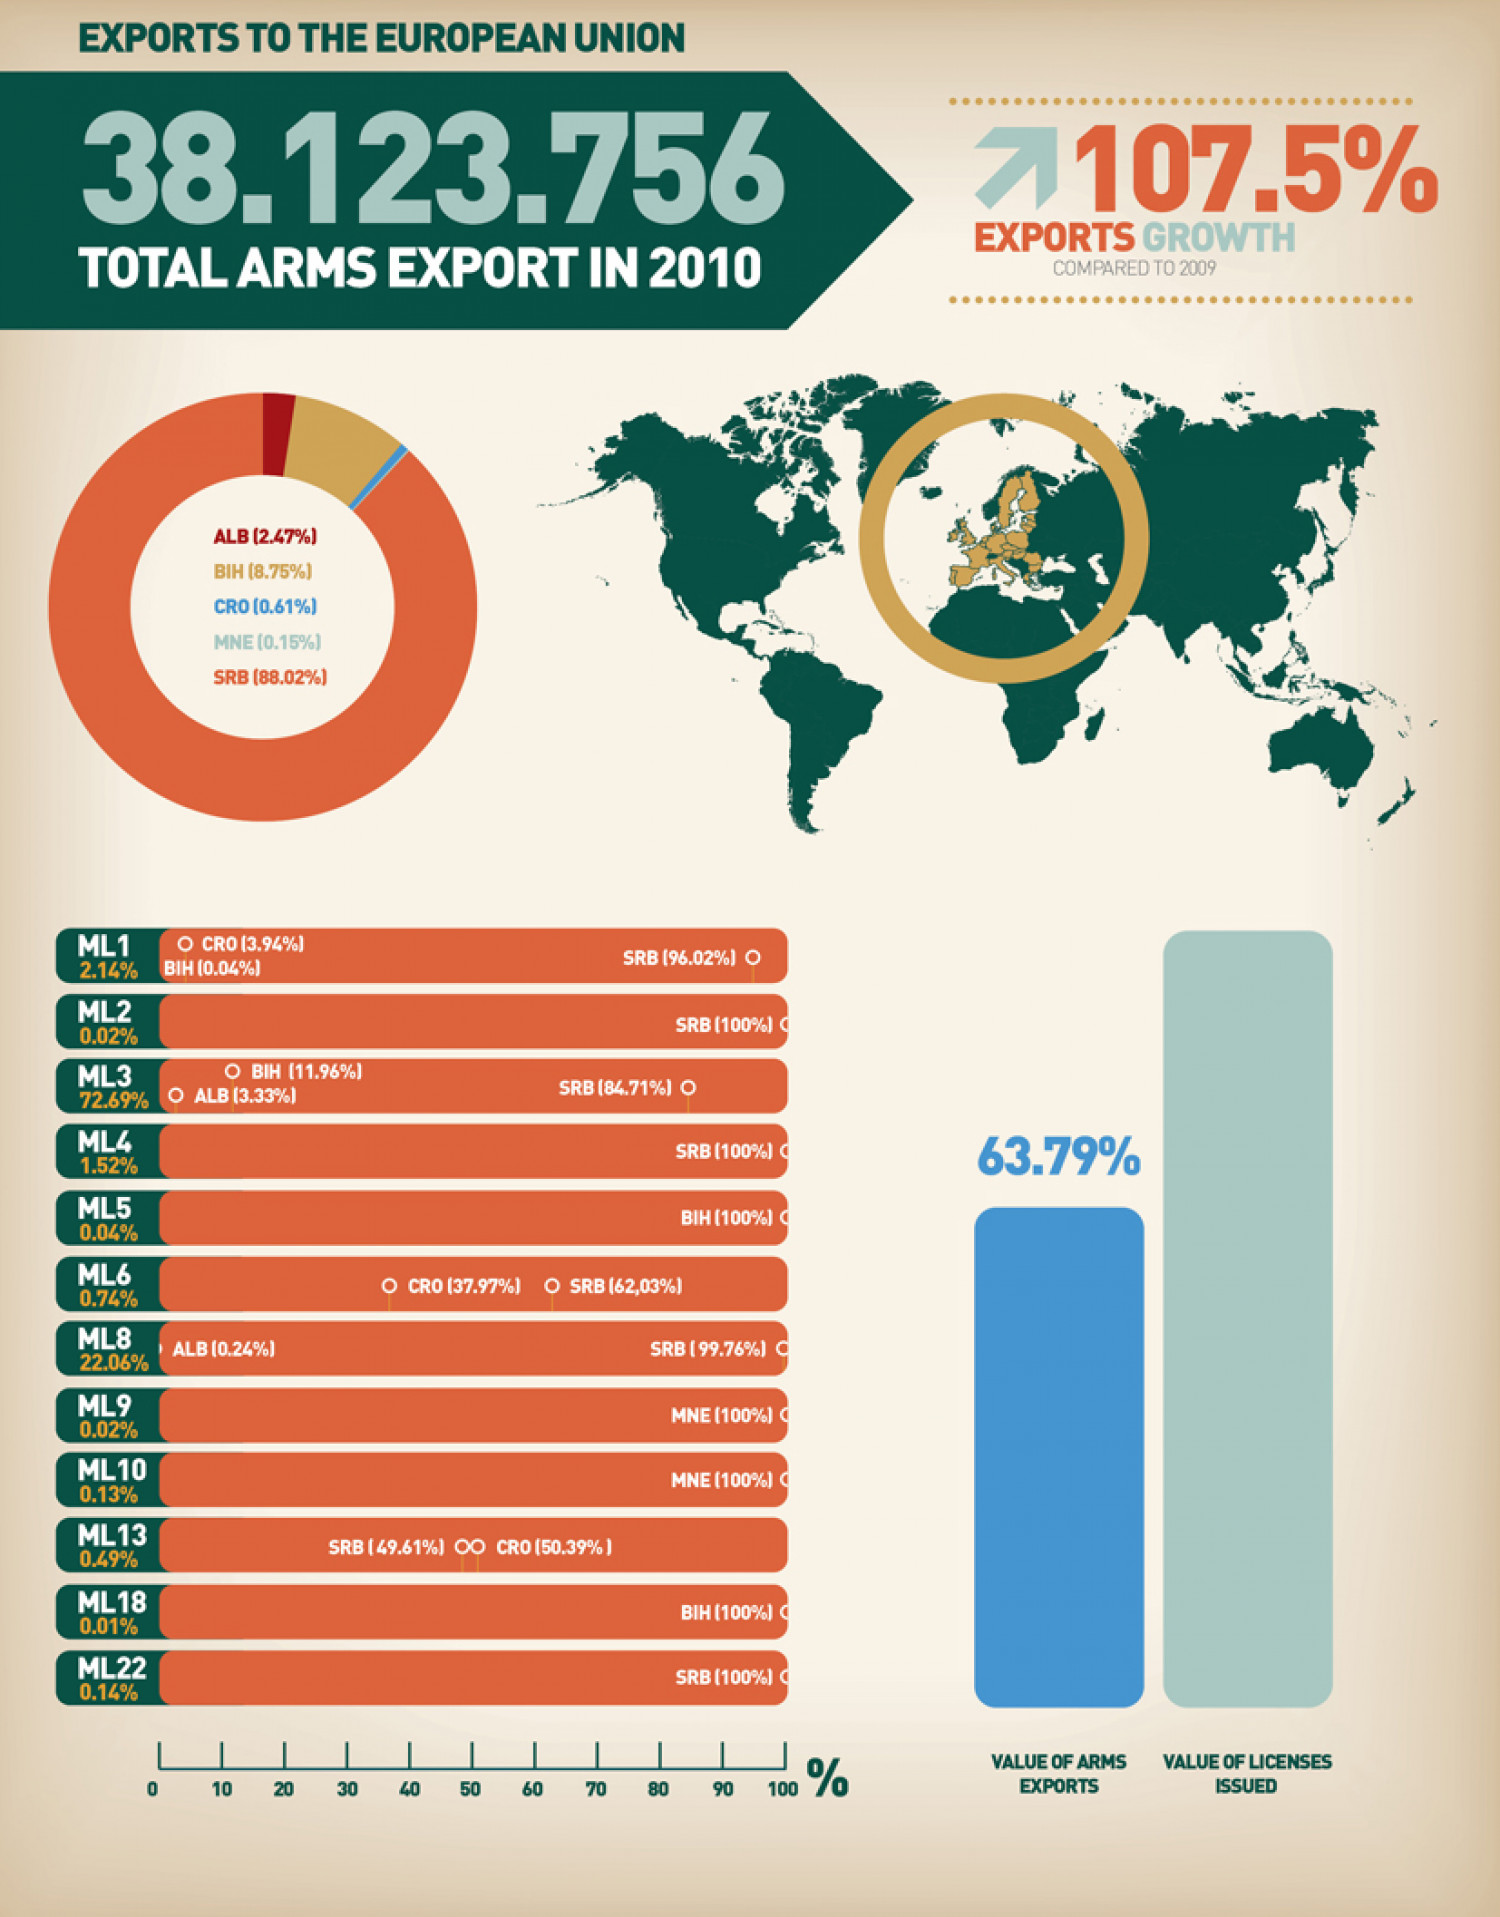 Overview of the Western Balkan Countries' Arms Exports to the European Union Infographic